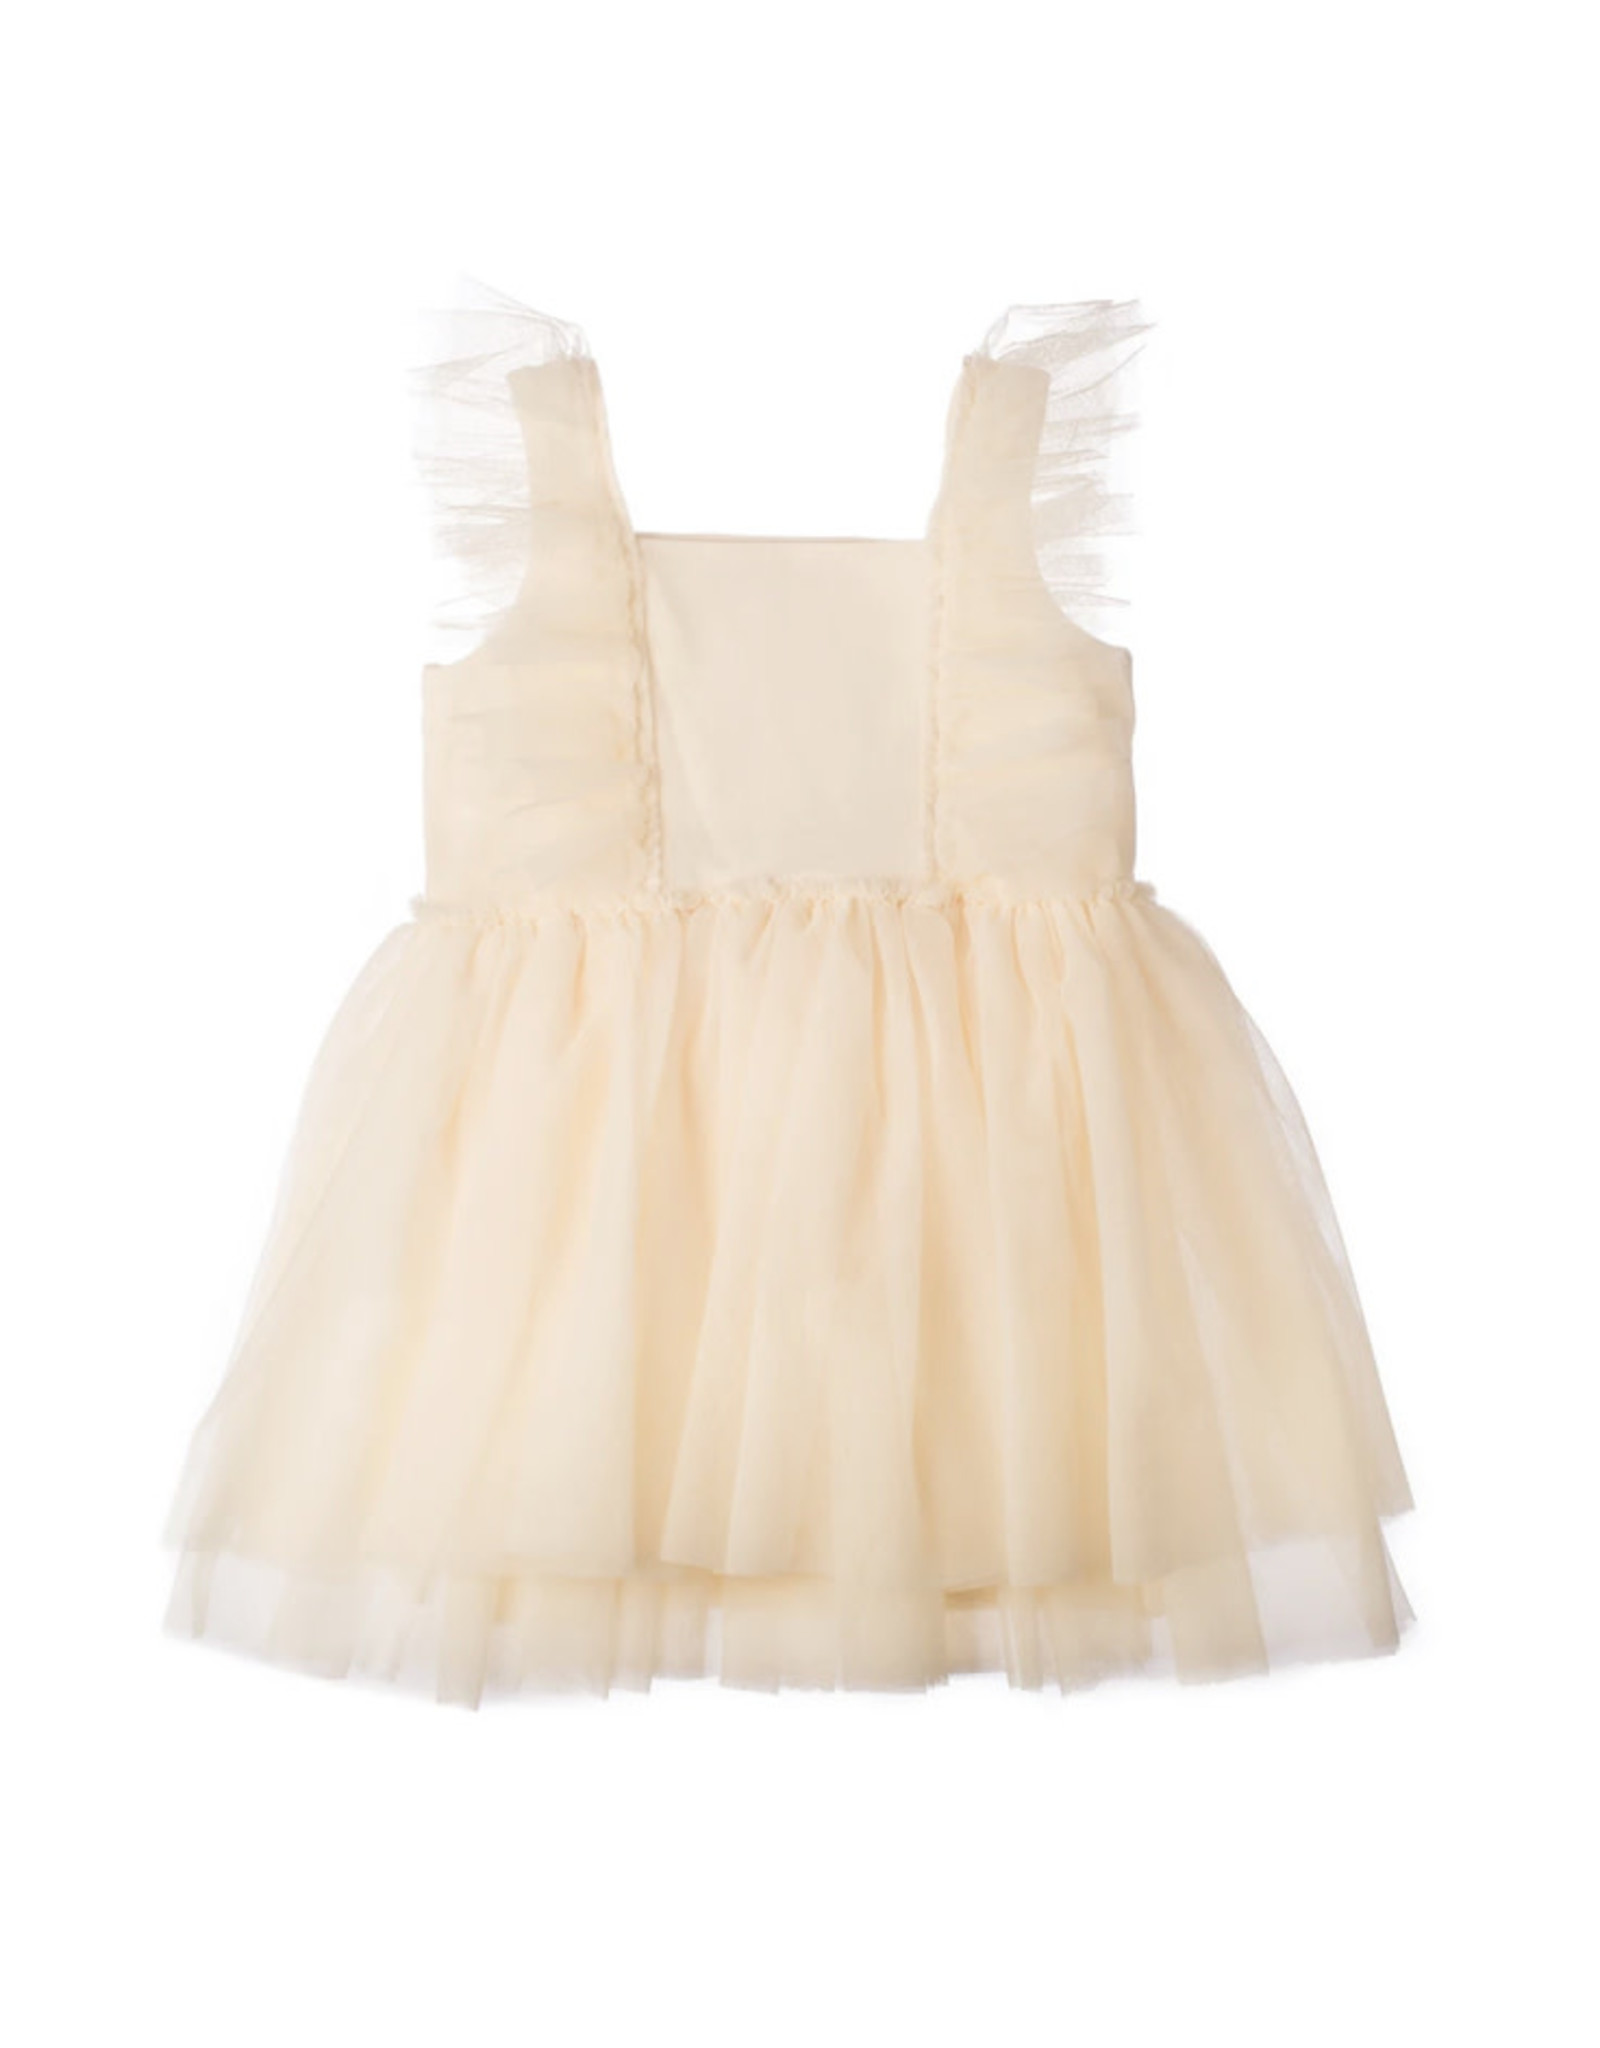 Born to Love- Off White Tulle Dress